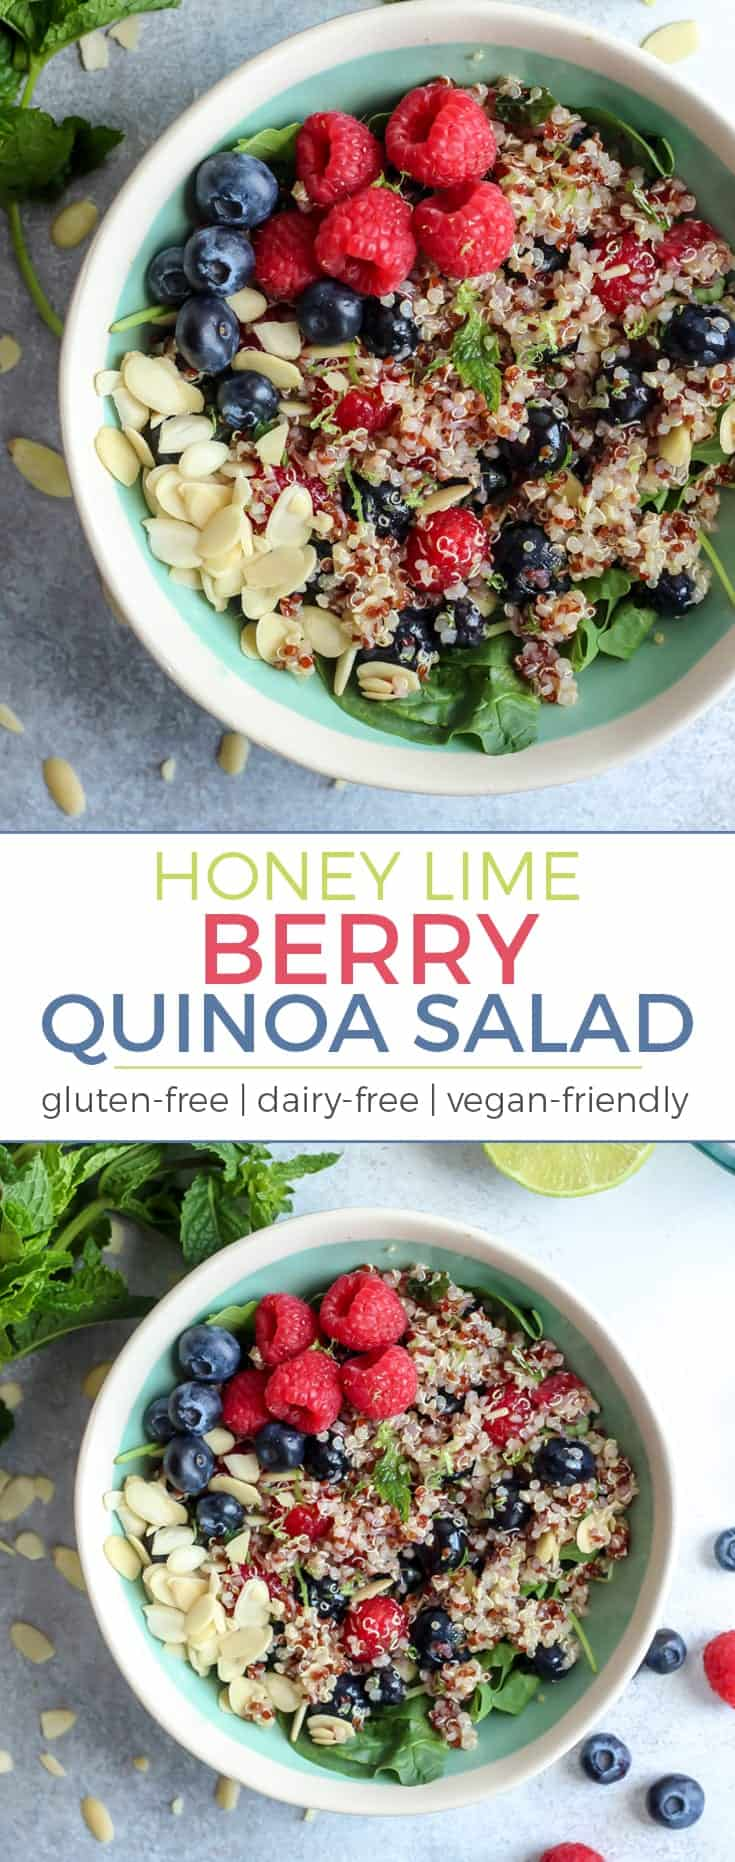 "Put this Honey Lime Berry Quinoa Salad on your ""EASY and HEALTHY"" recipe list!  Naturally gluten-free, dairy-free, vegan-friendly."